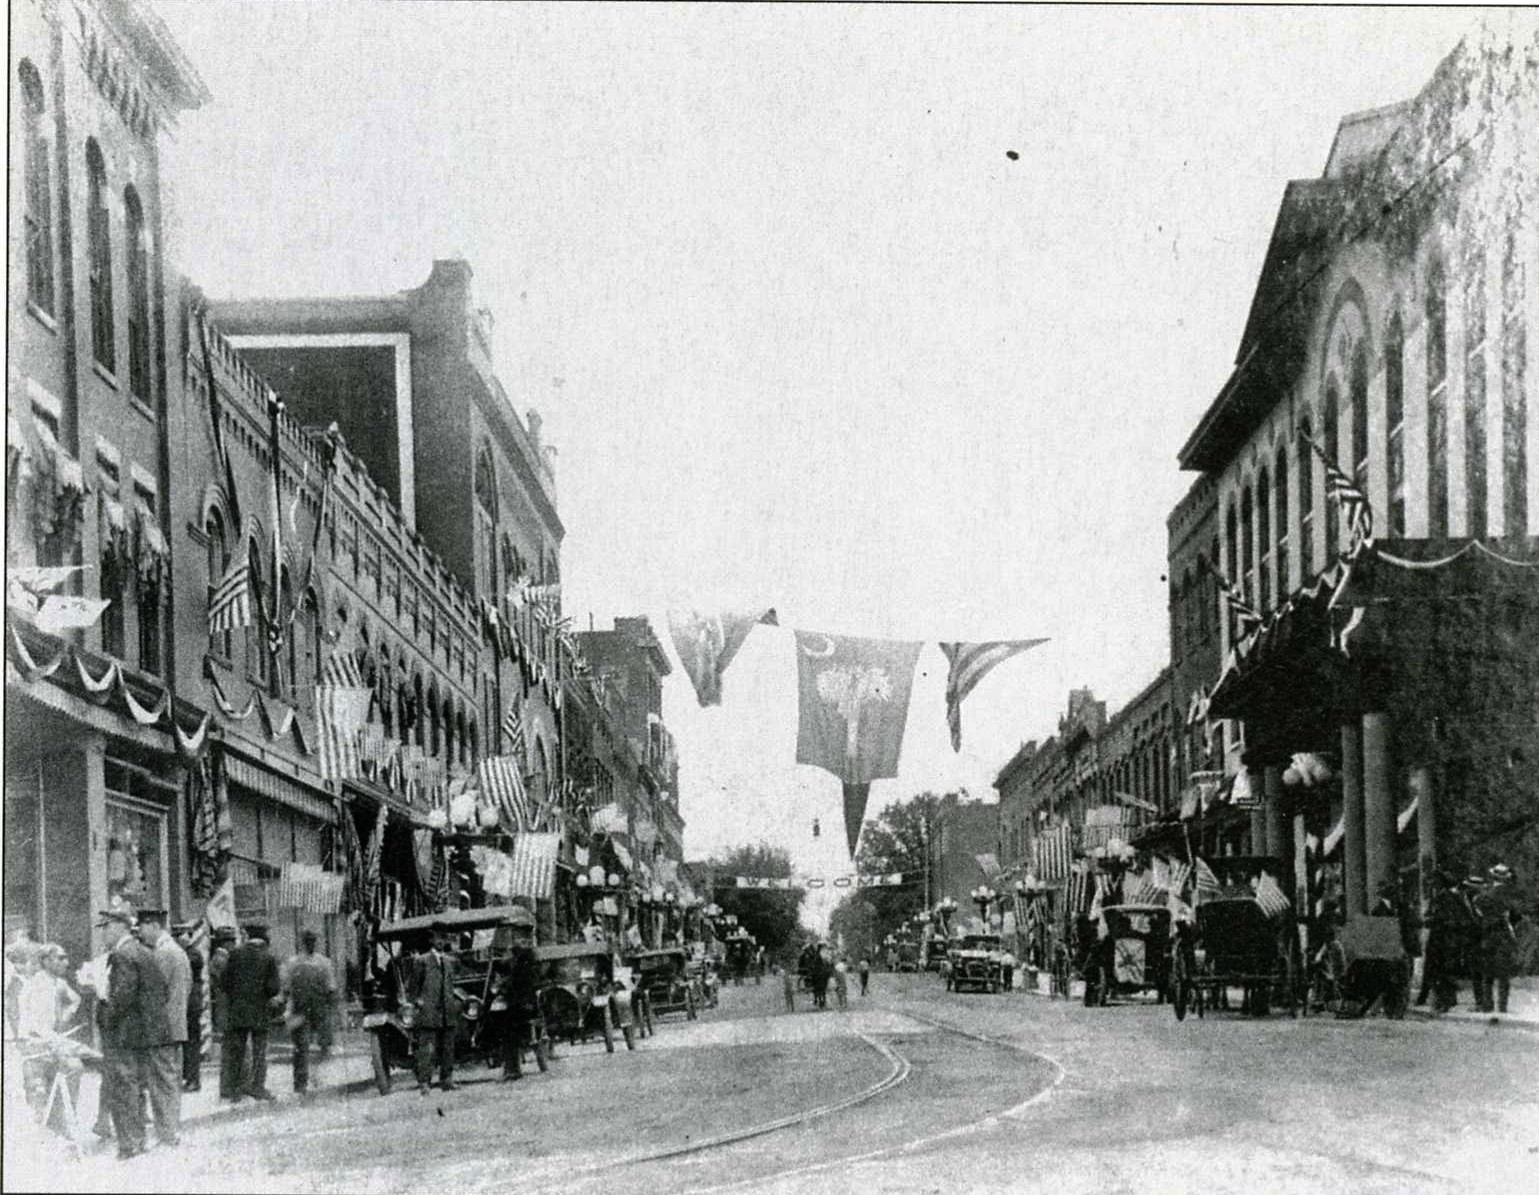 Ca. 1910 image of downtown Rock Hill looking east. Note the early cars as well as the trolley tracks which turned from Main Street onto North Trade Street.